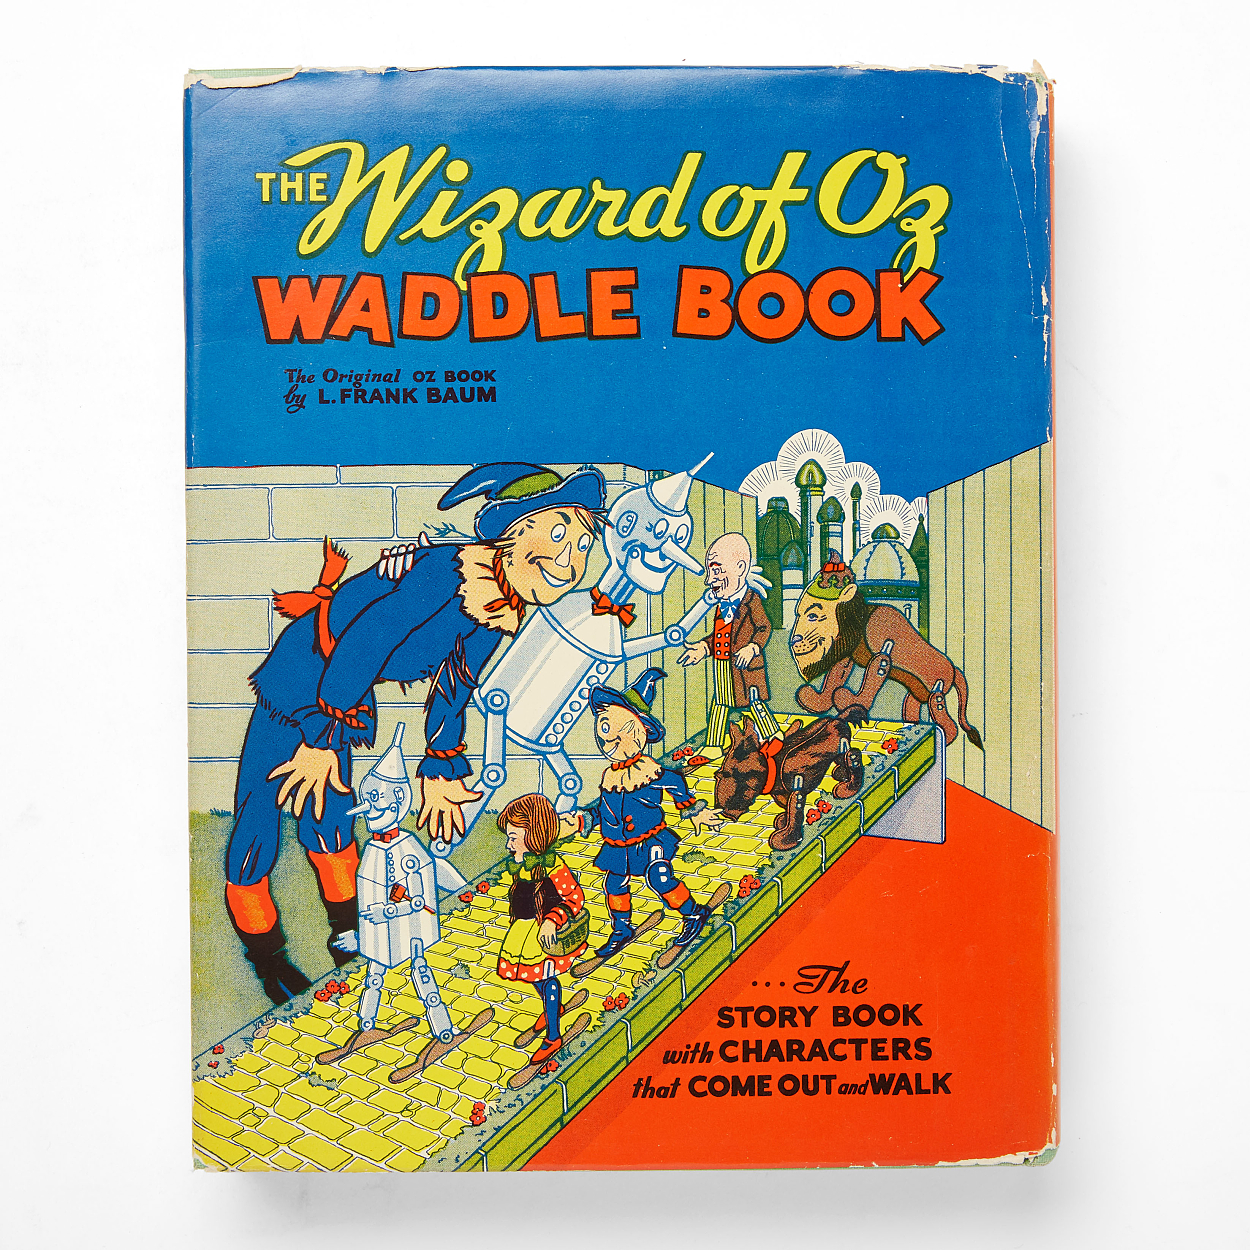 Unusual toy book The Wizard of Oz Waddle Book 1934